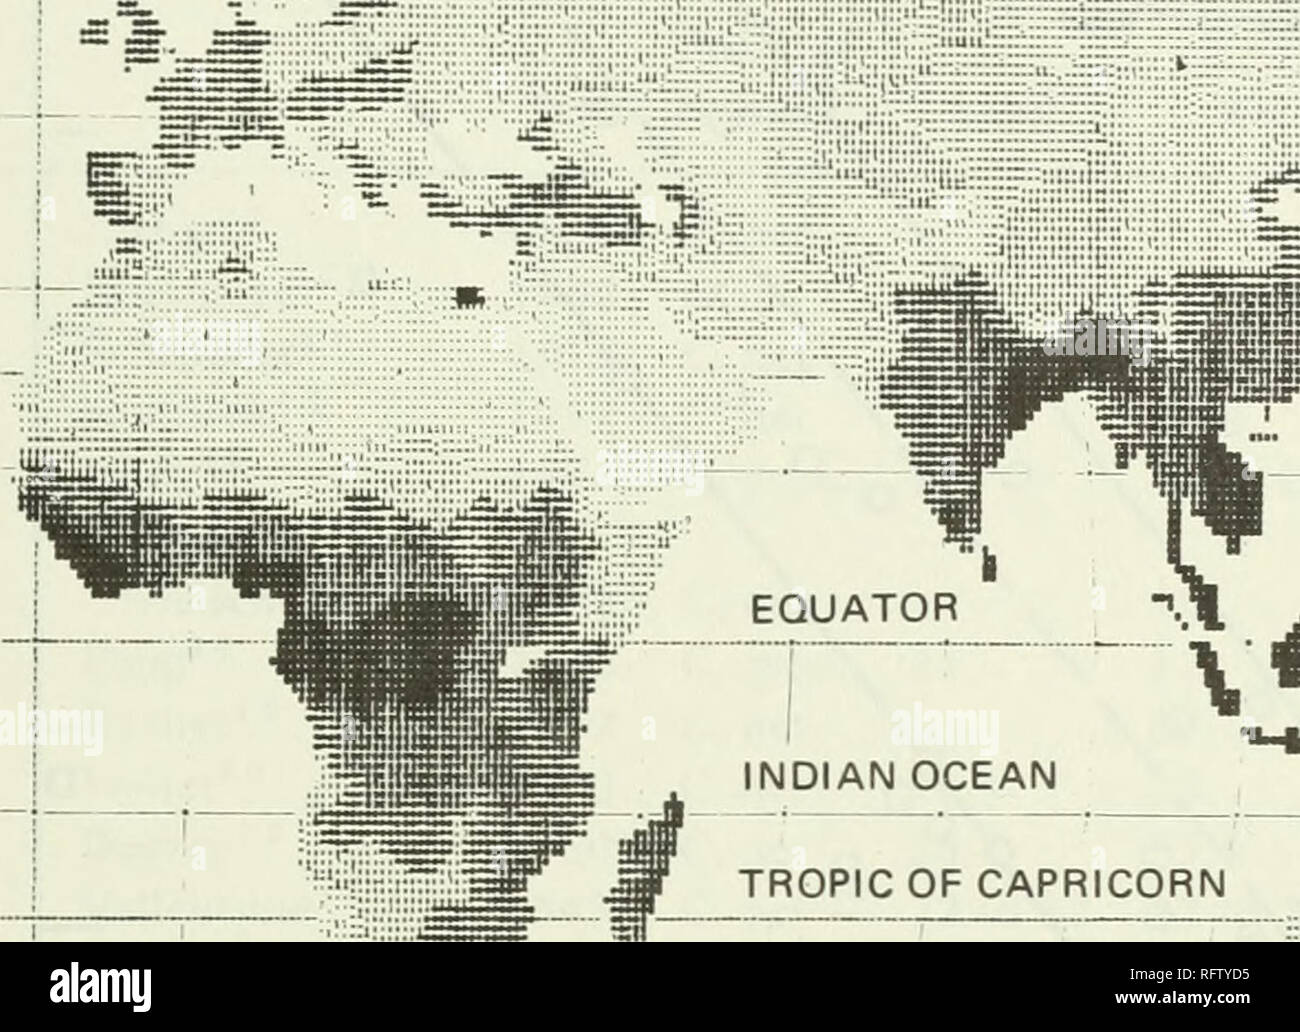 Tropic Of Capricorn On World Map.Tropic Capricorn Cancer Stock Photos Tropic Capricorn Cancer Stock